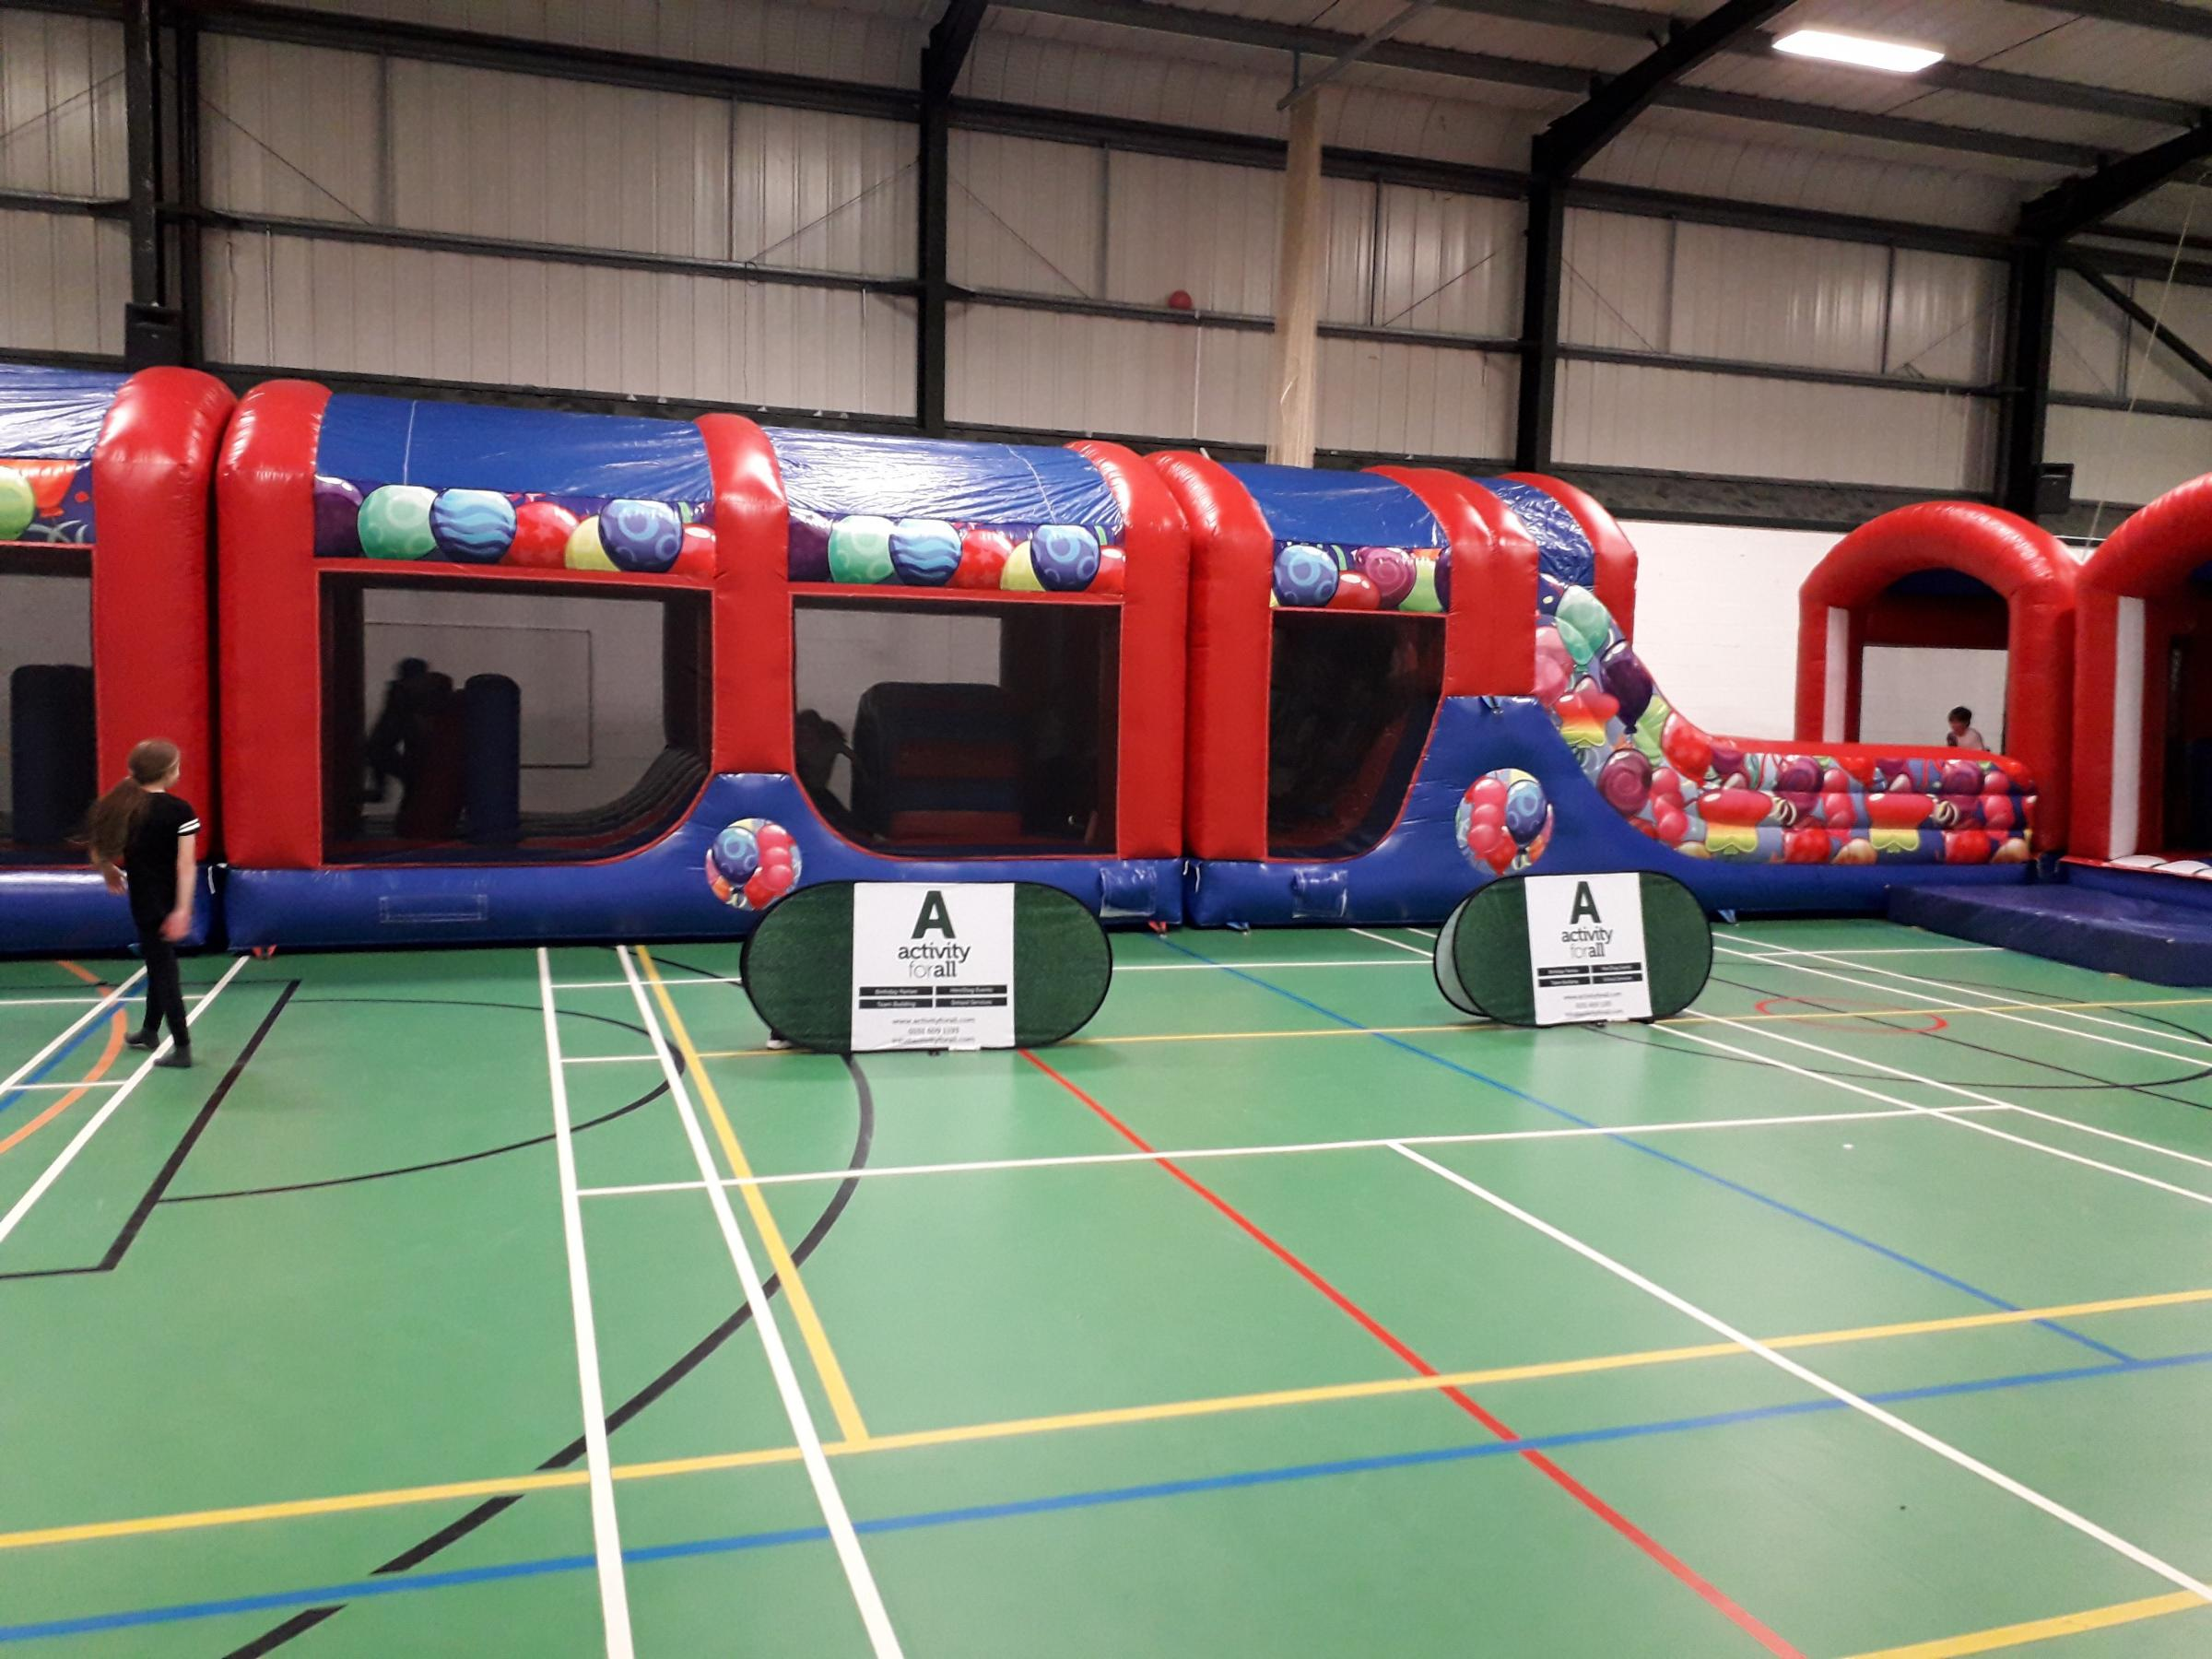 October half-term activity camp from creators of Inflation Wirral